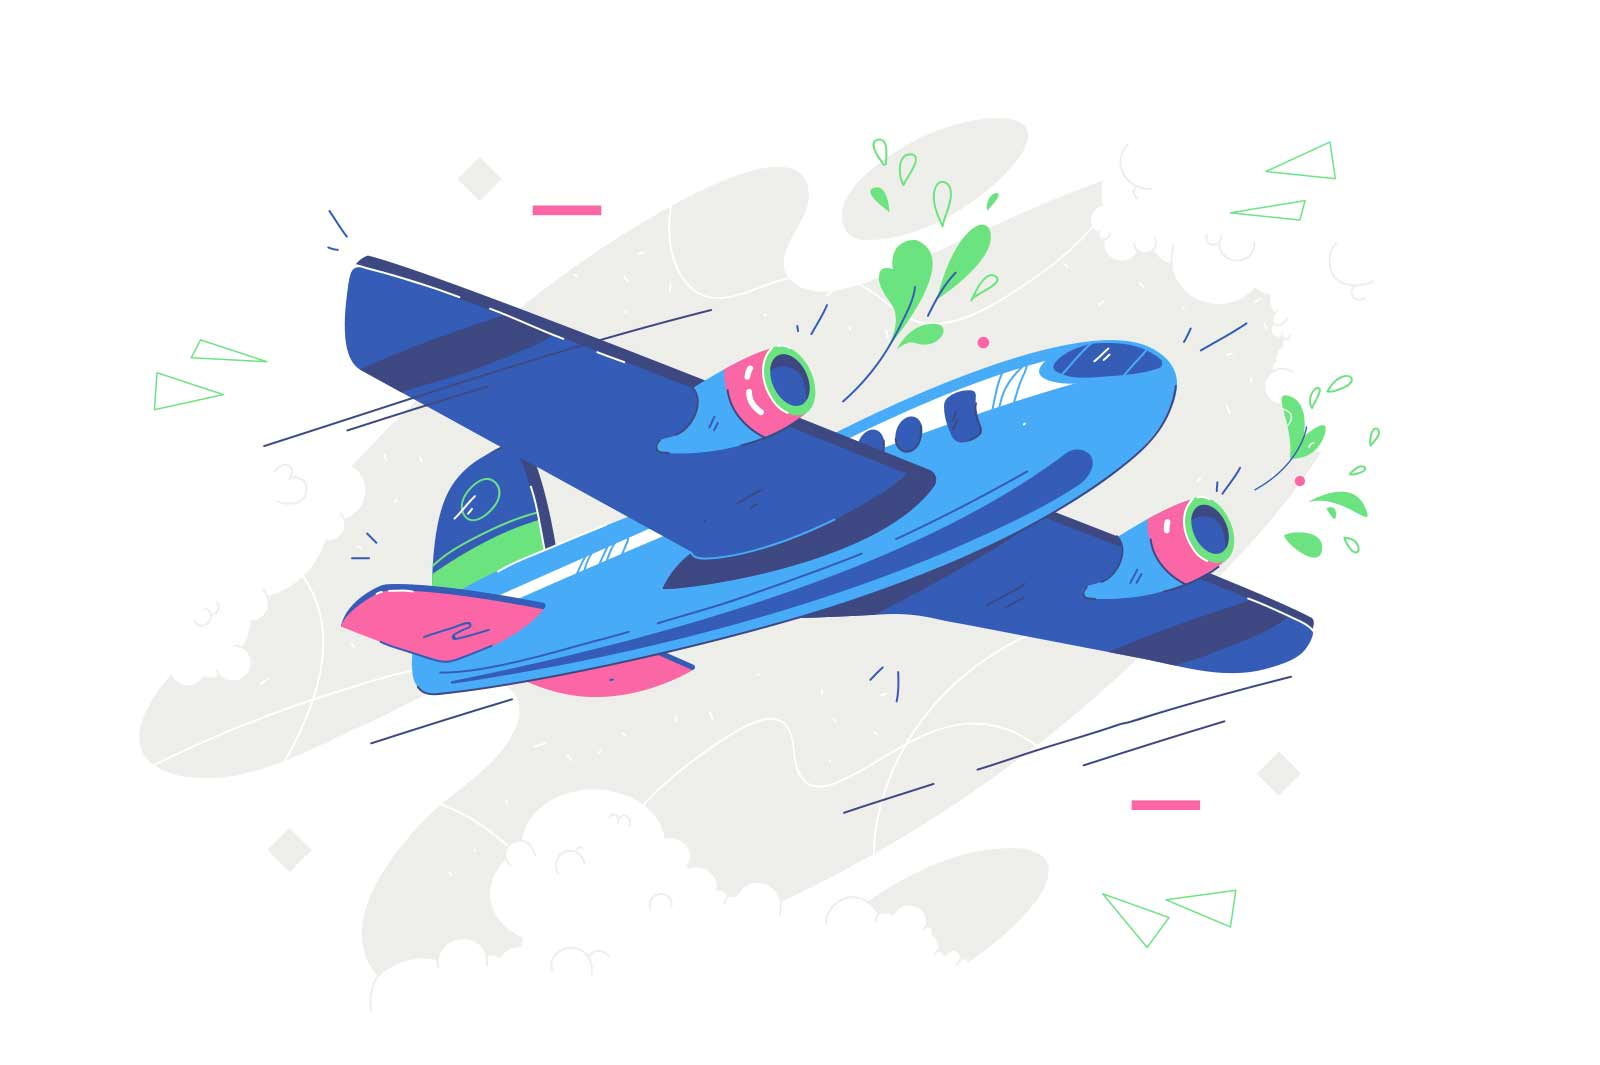 Modern jet airliner in sky vector illustration. Large commercial passenger aircraft flat style. International flights and air tourism concept. Isolated on white background